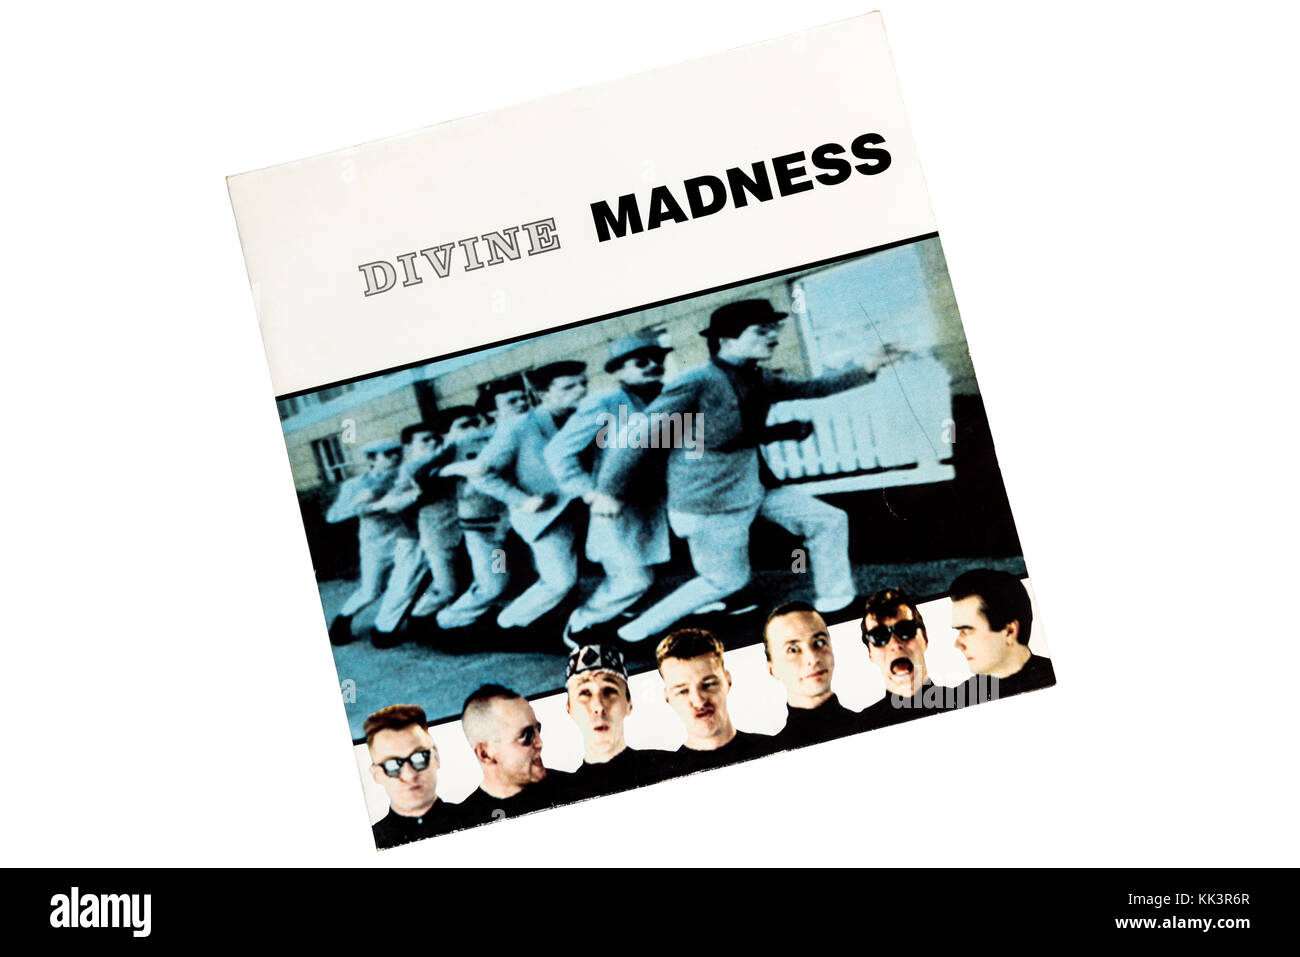 Divine Madness 1992 Album Cover Stretched Canvas Wall Art Poster Print